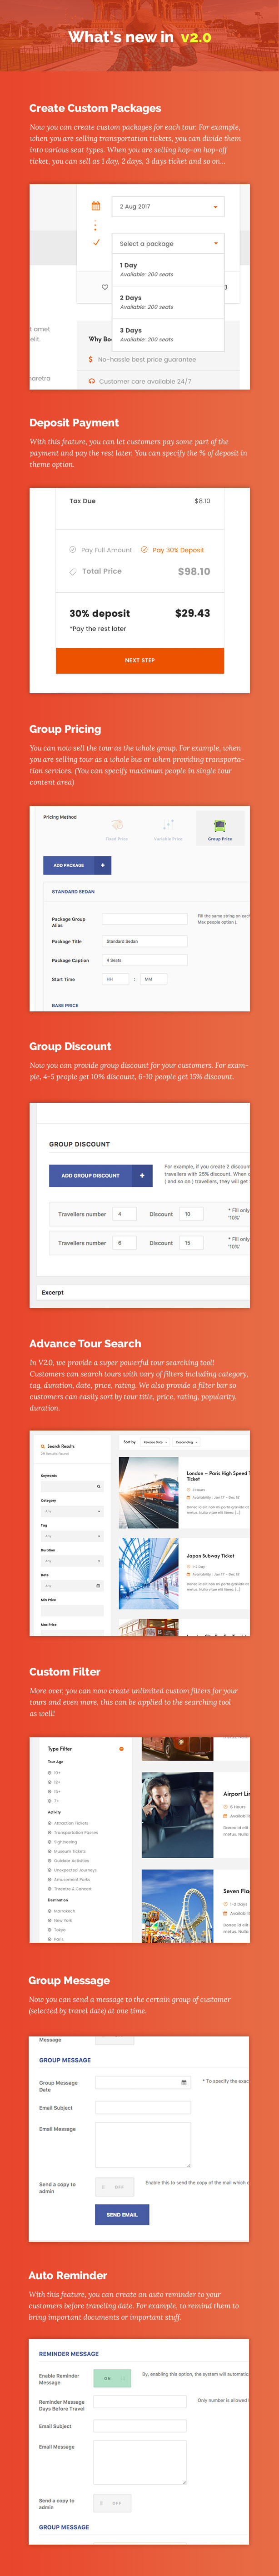 screen features v2 - Travel Tour Booking WordPress